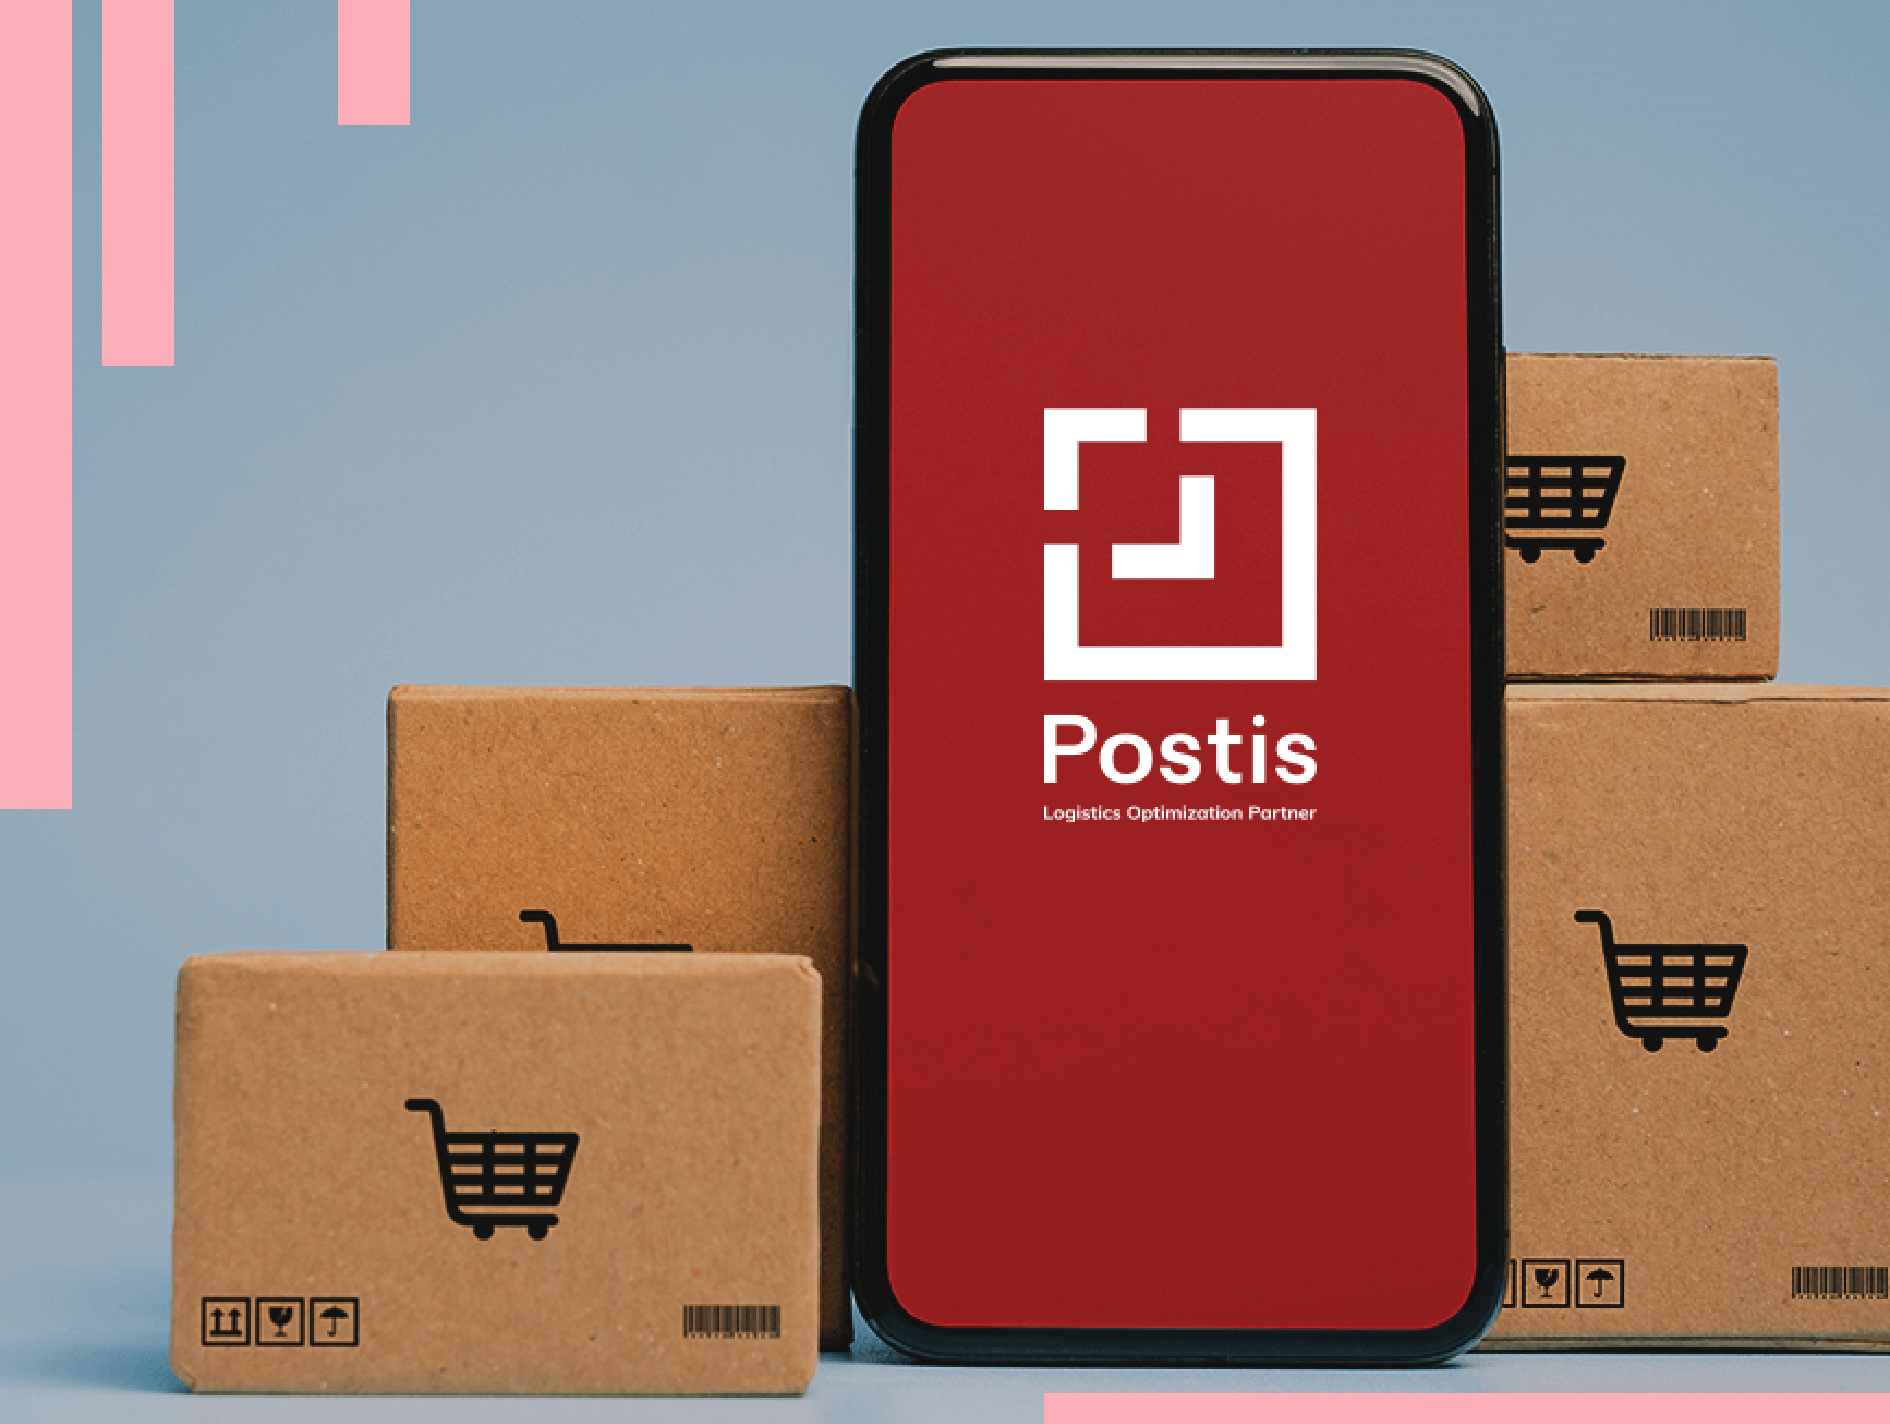 mobile phone with Postis logo on screen